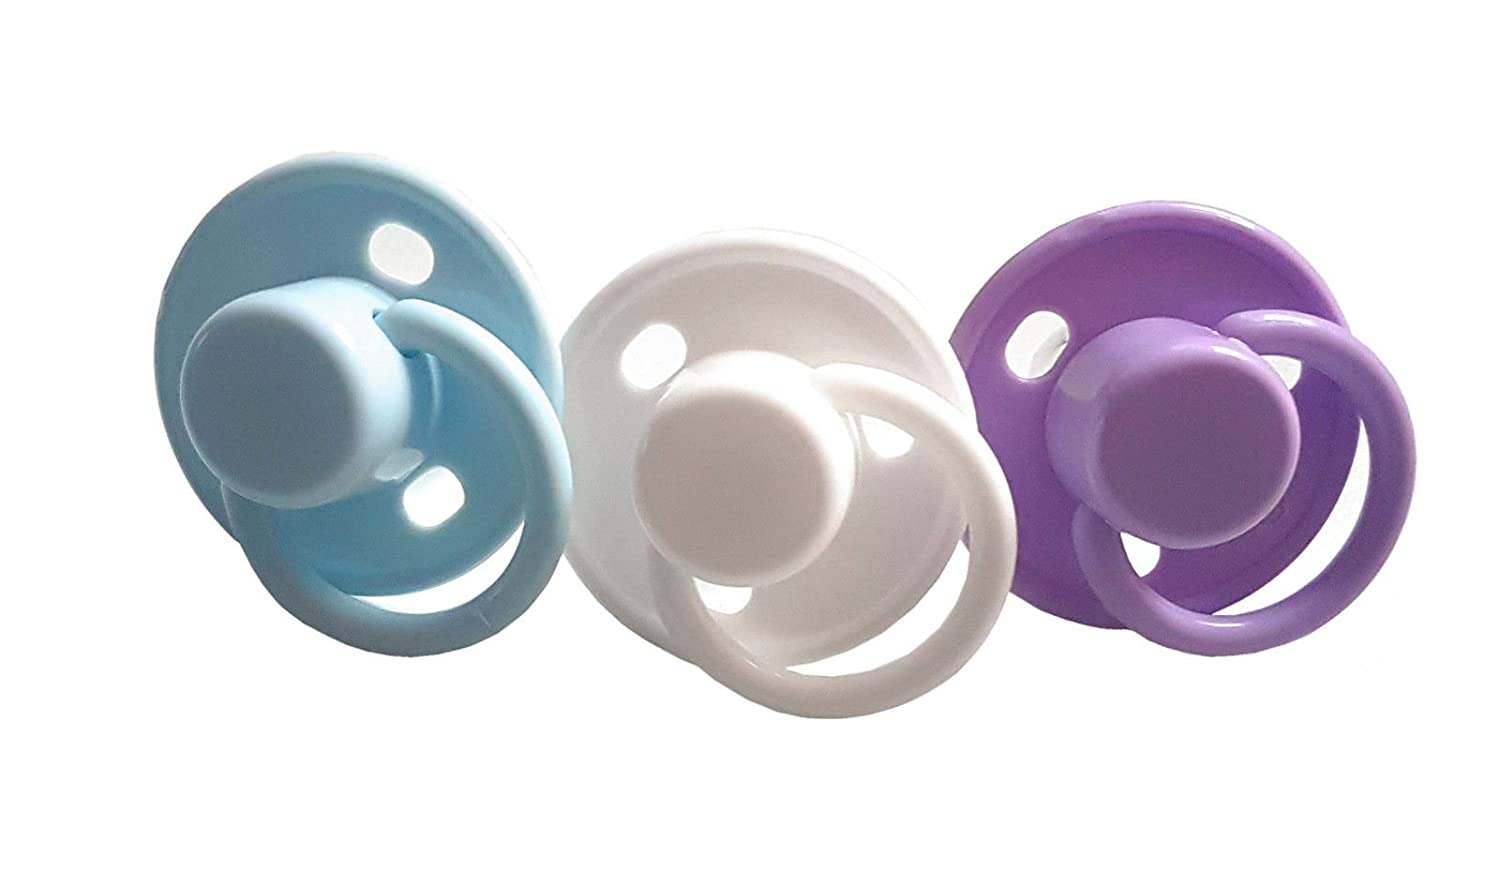 Sure Baby - Silicone Cherry Soothers Dummies Pacifiers (White) Sure Health and Beauty